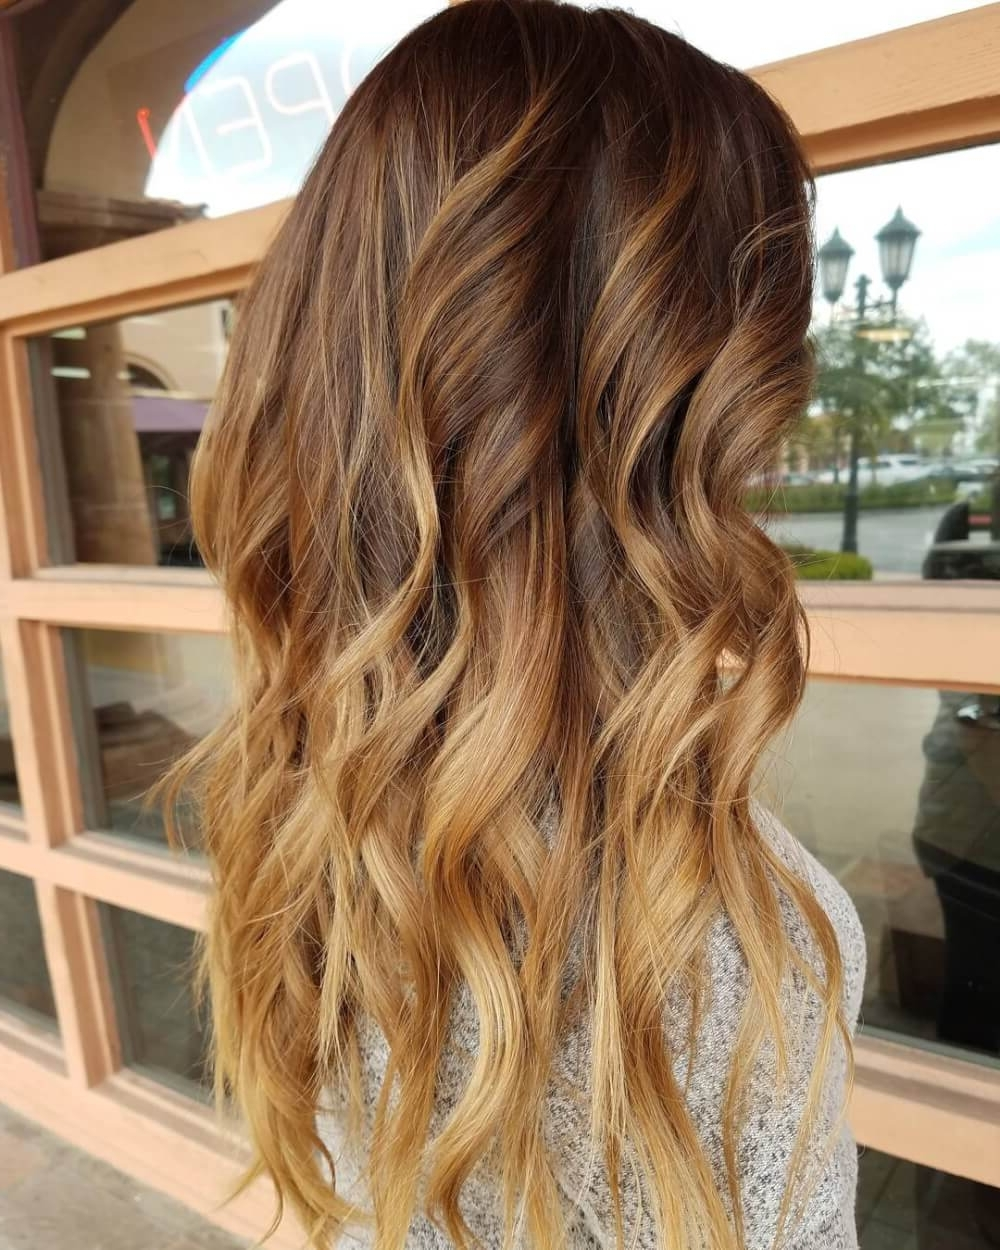 34 Light Brown Hair Colors That Are Blowing Up In 2018 Intended For Well Liked Beige Balayage For Light Brown Hair (View 2 of 20)